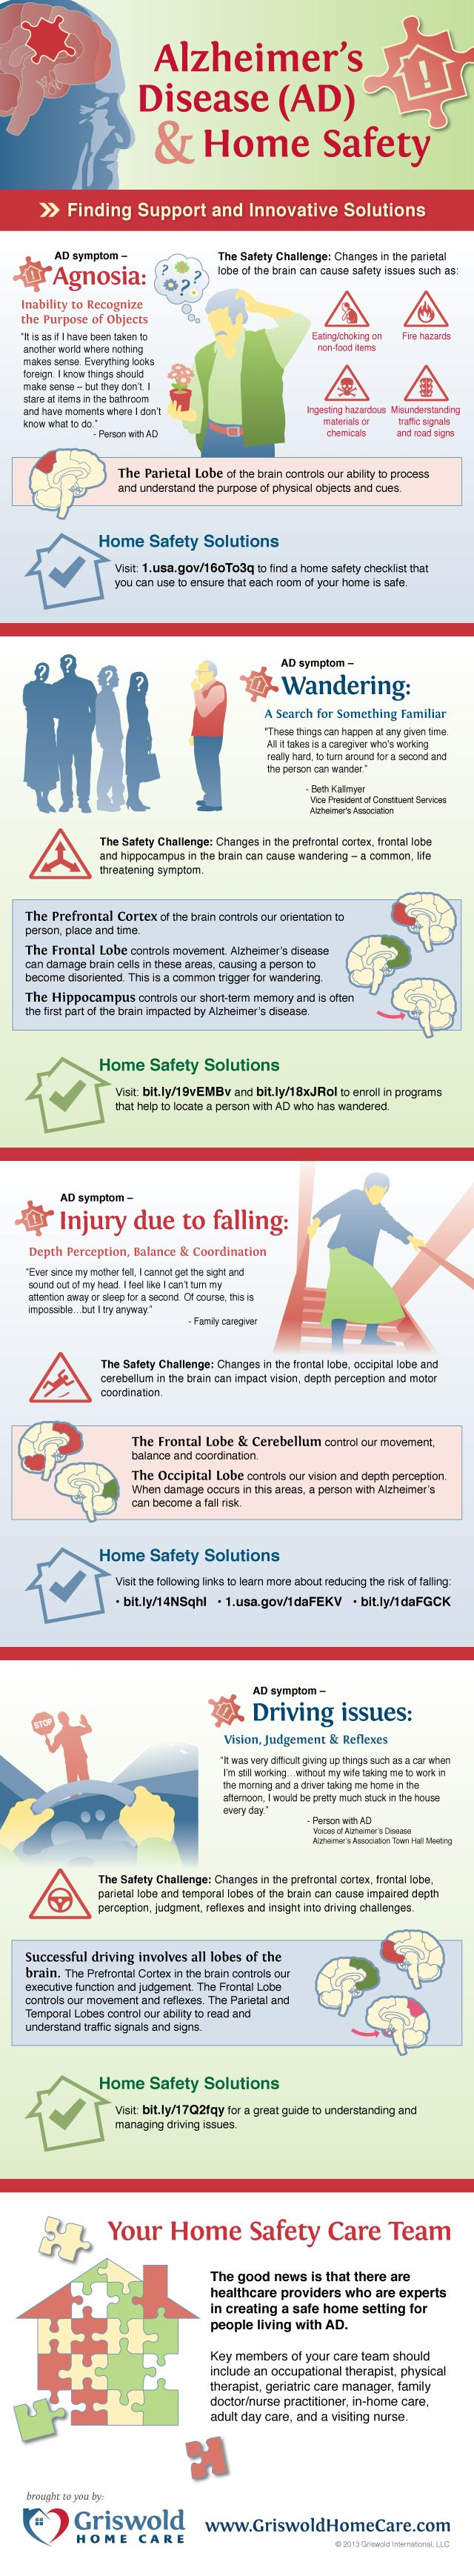 To celebrate National Safe at Home Week, Griswold Home Care has developed a visual snapshot of the common, yet serious safety issues that impact people with Alzheimer's Disease and their families / professional caregivers. #alzheimers #homesafety #infographic